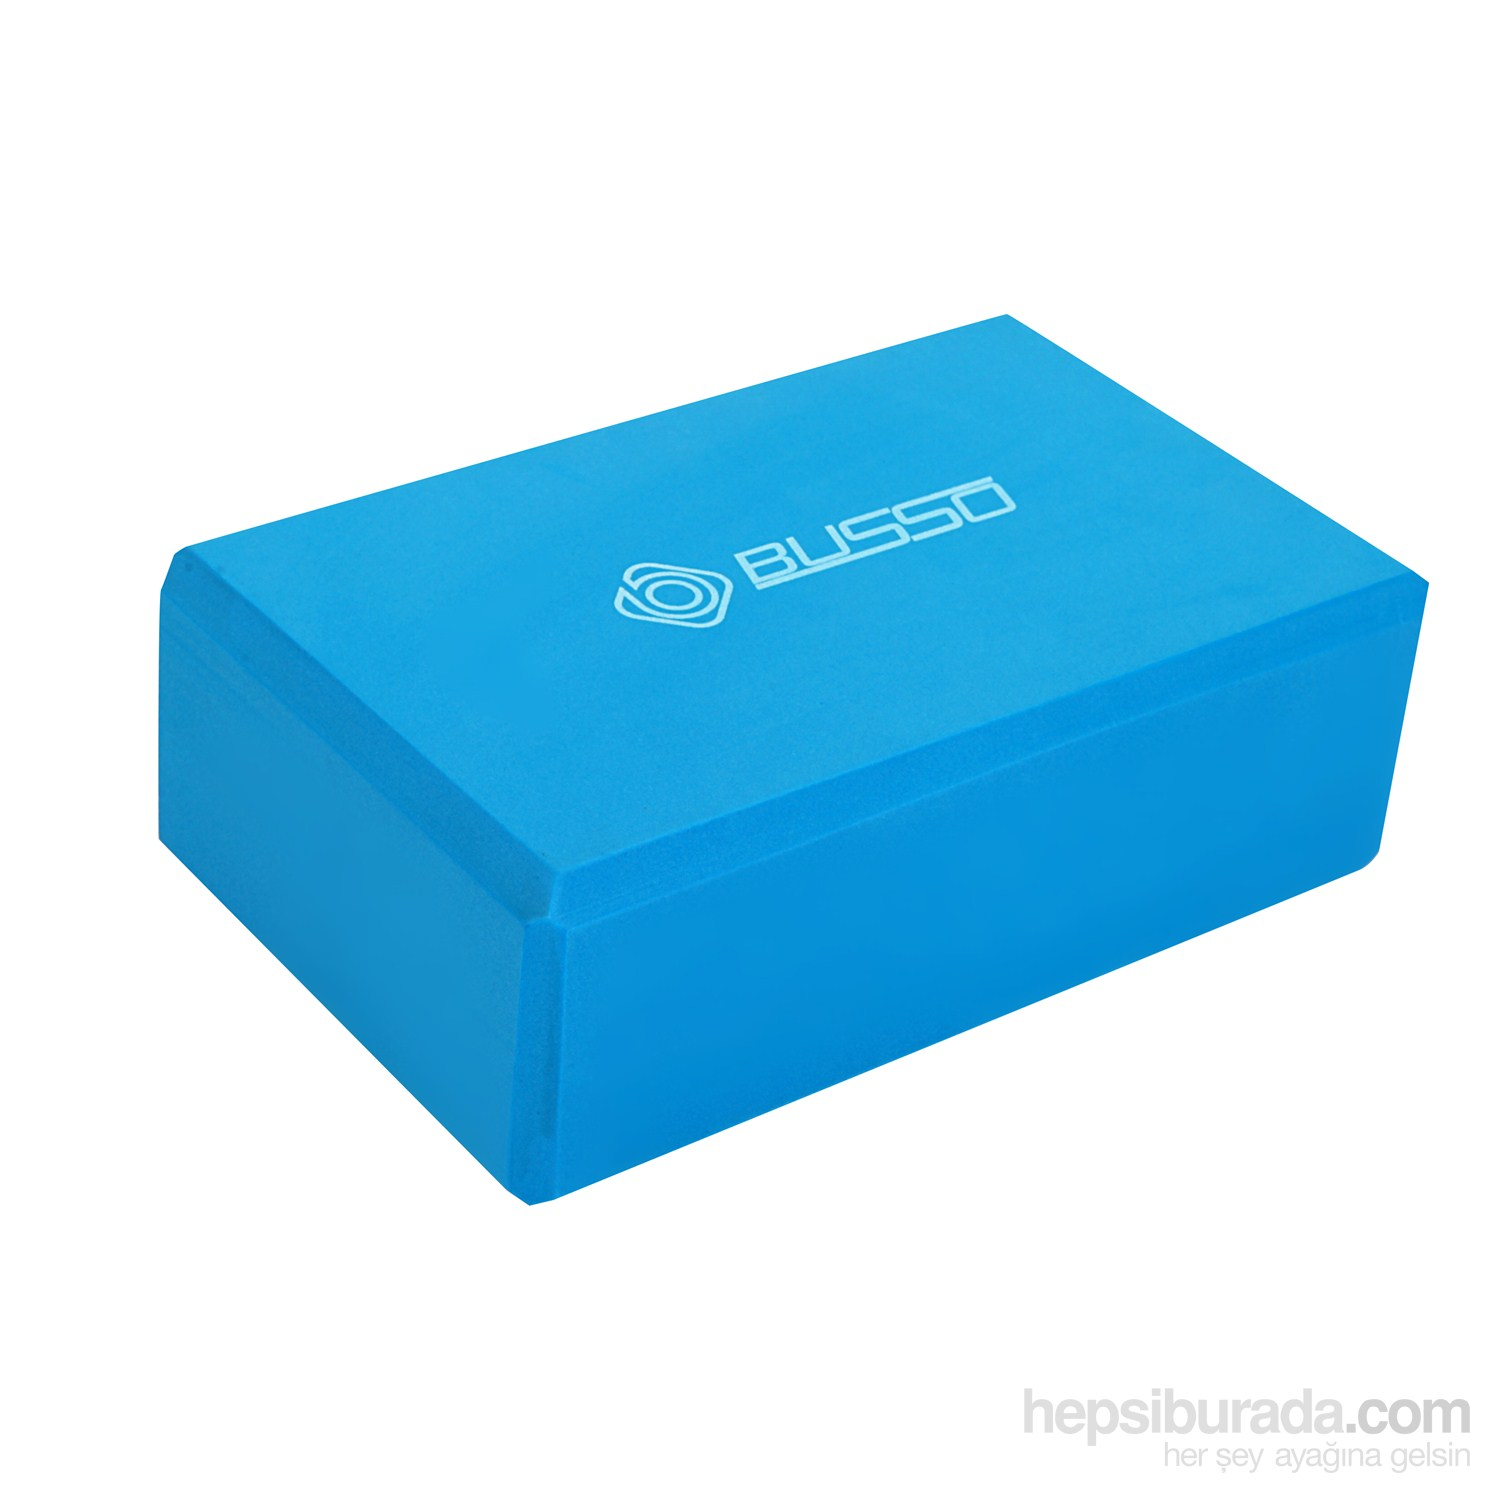 Busso Yb-10 Yoga Block